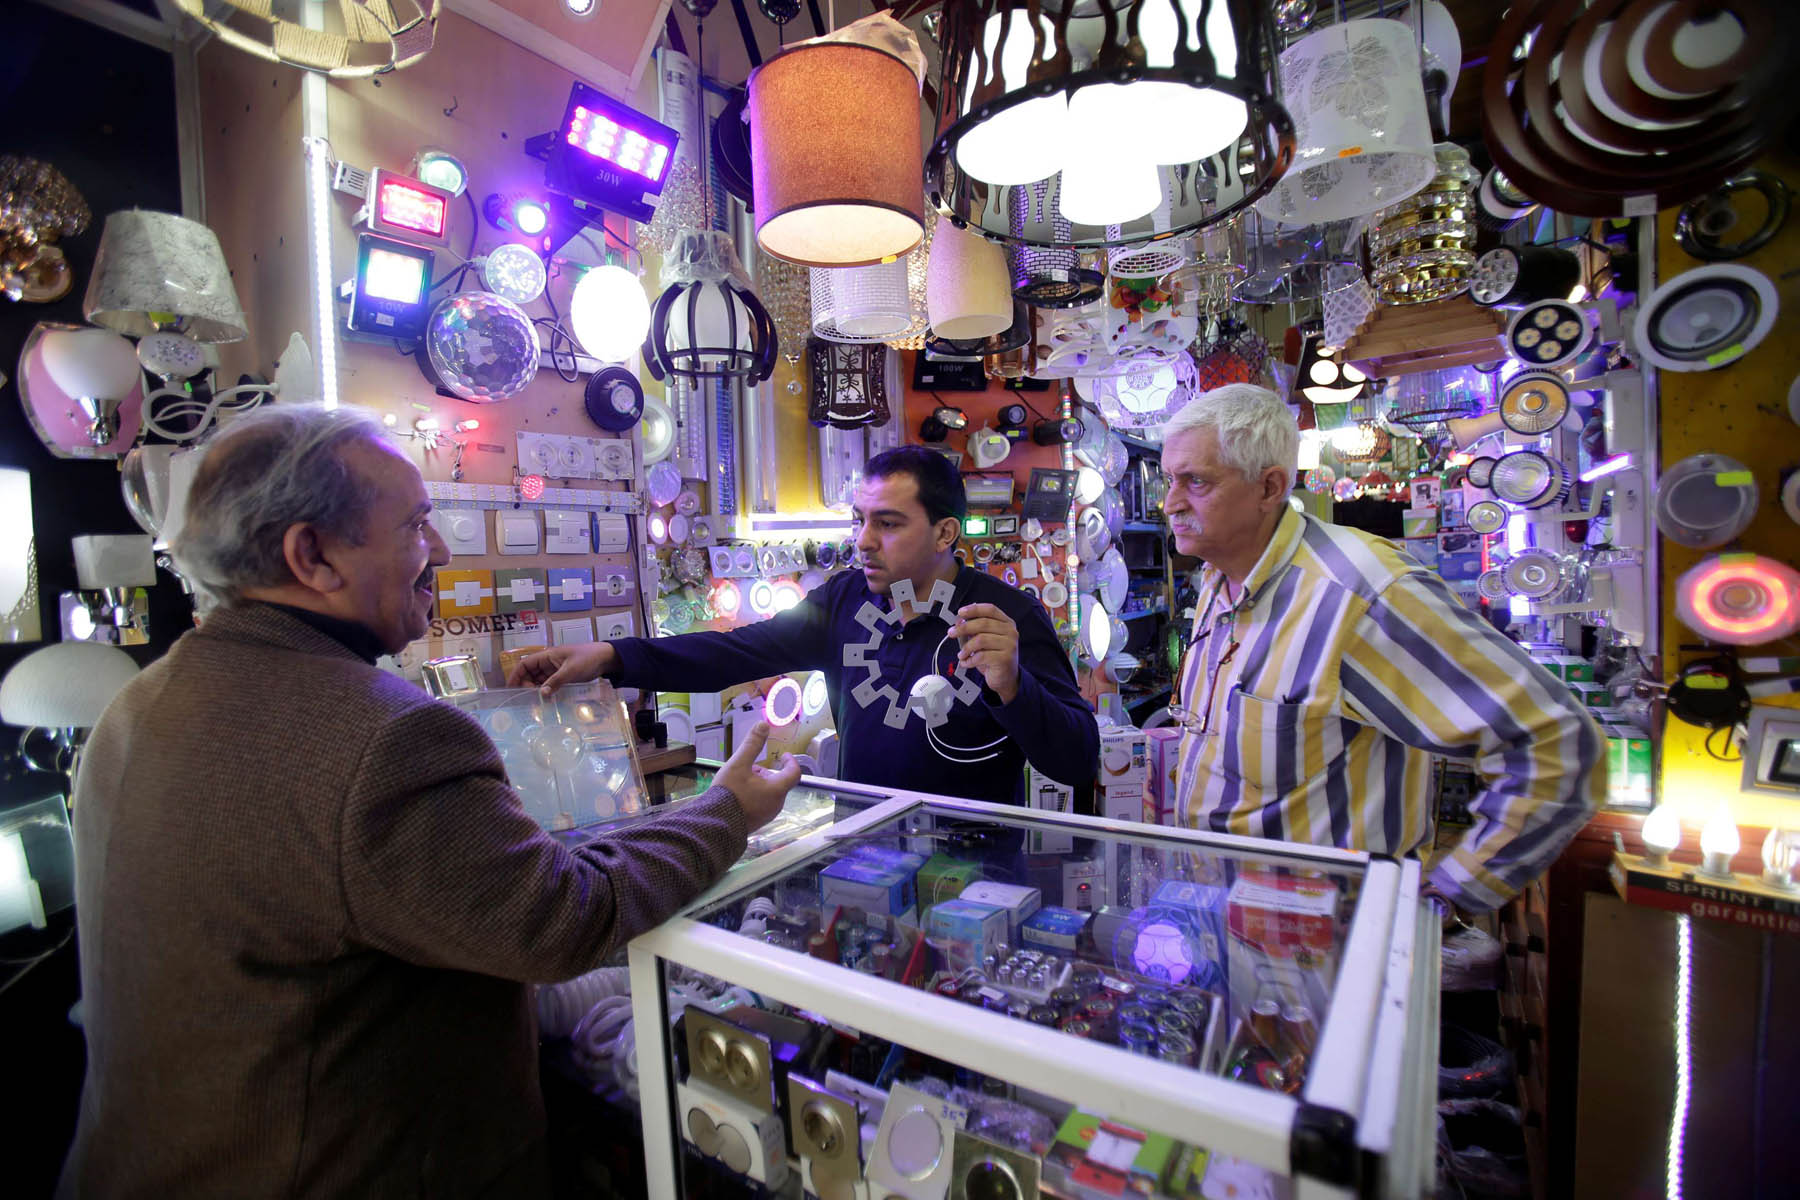 A customer buys a light bulb at a lighting store in Algiers. (Reuters)